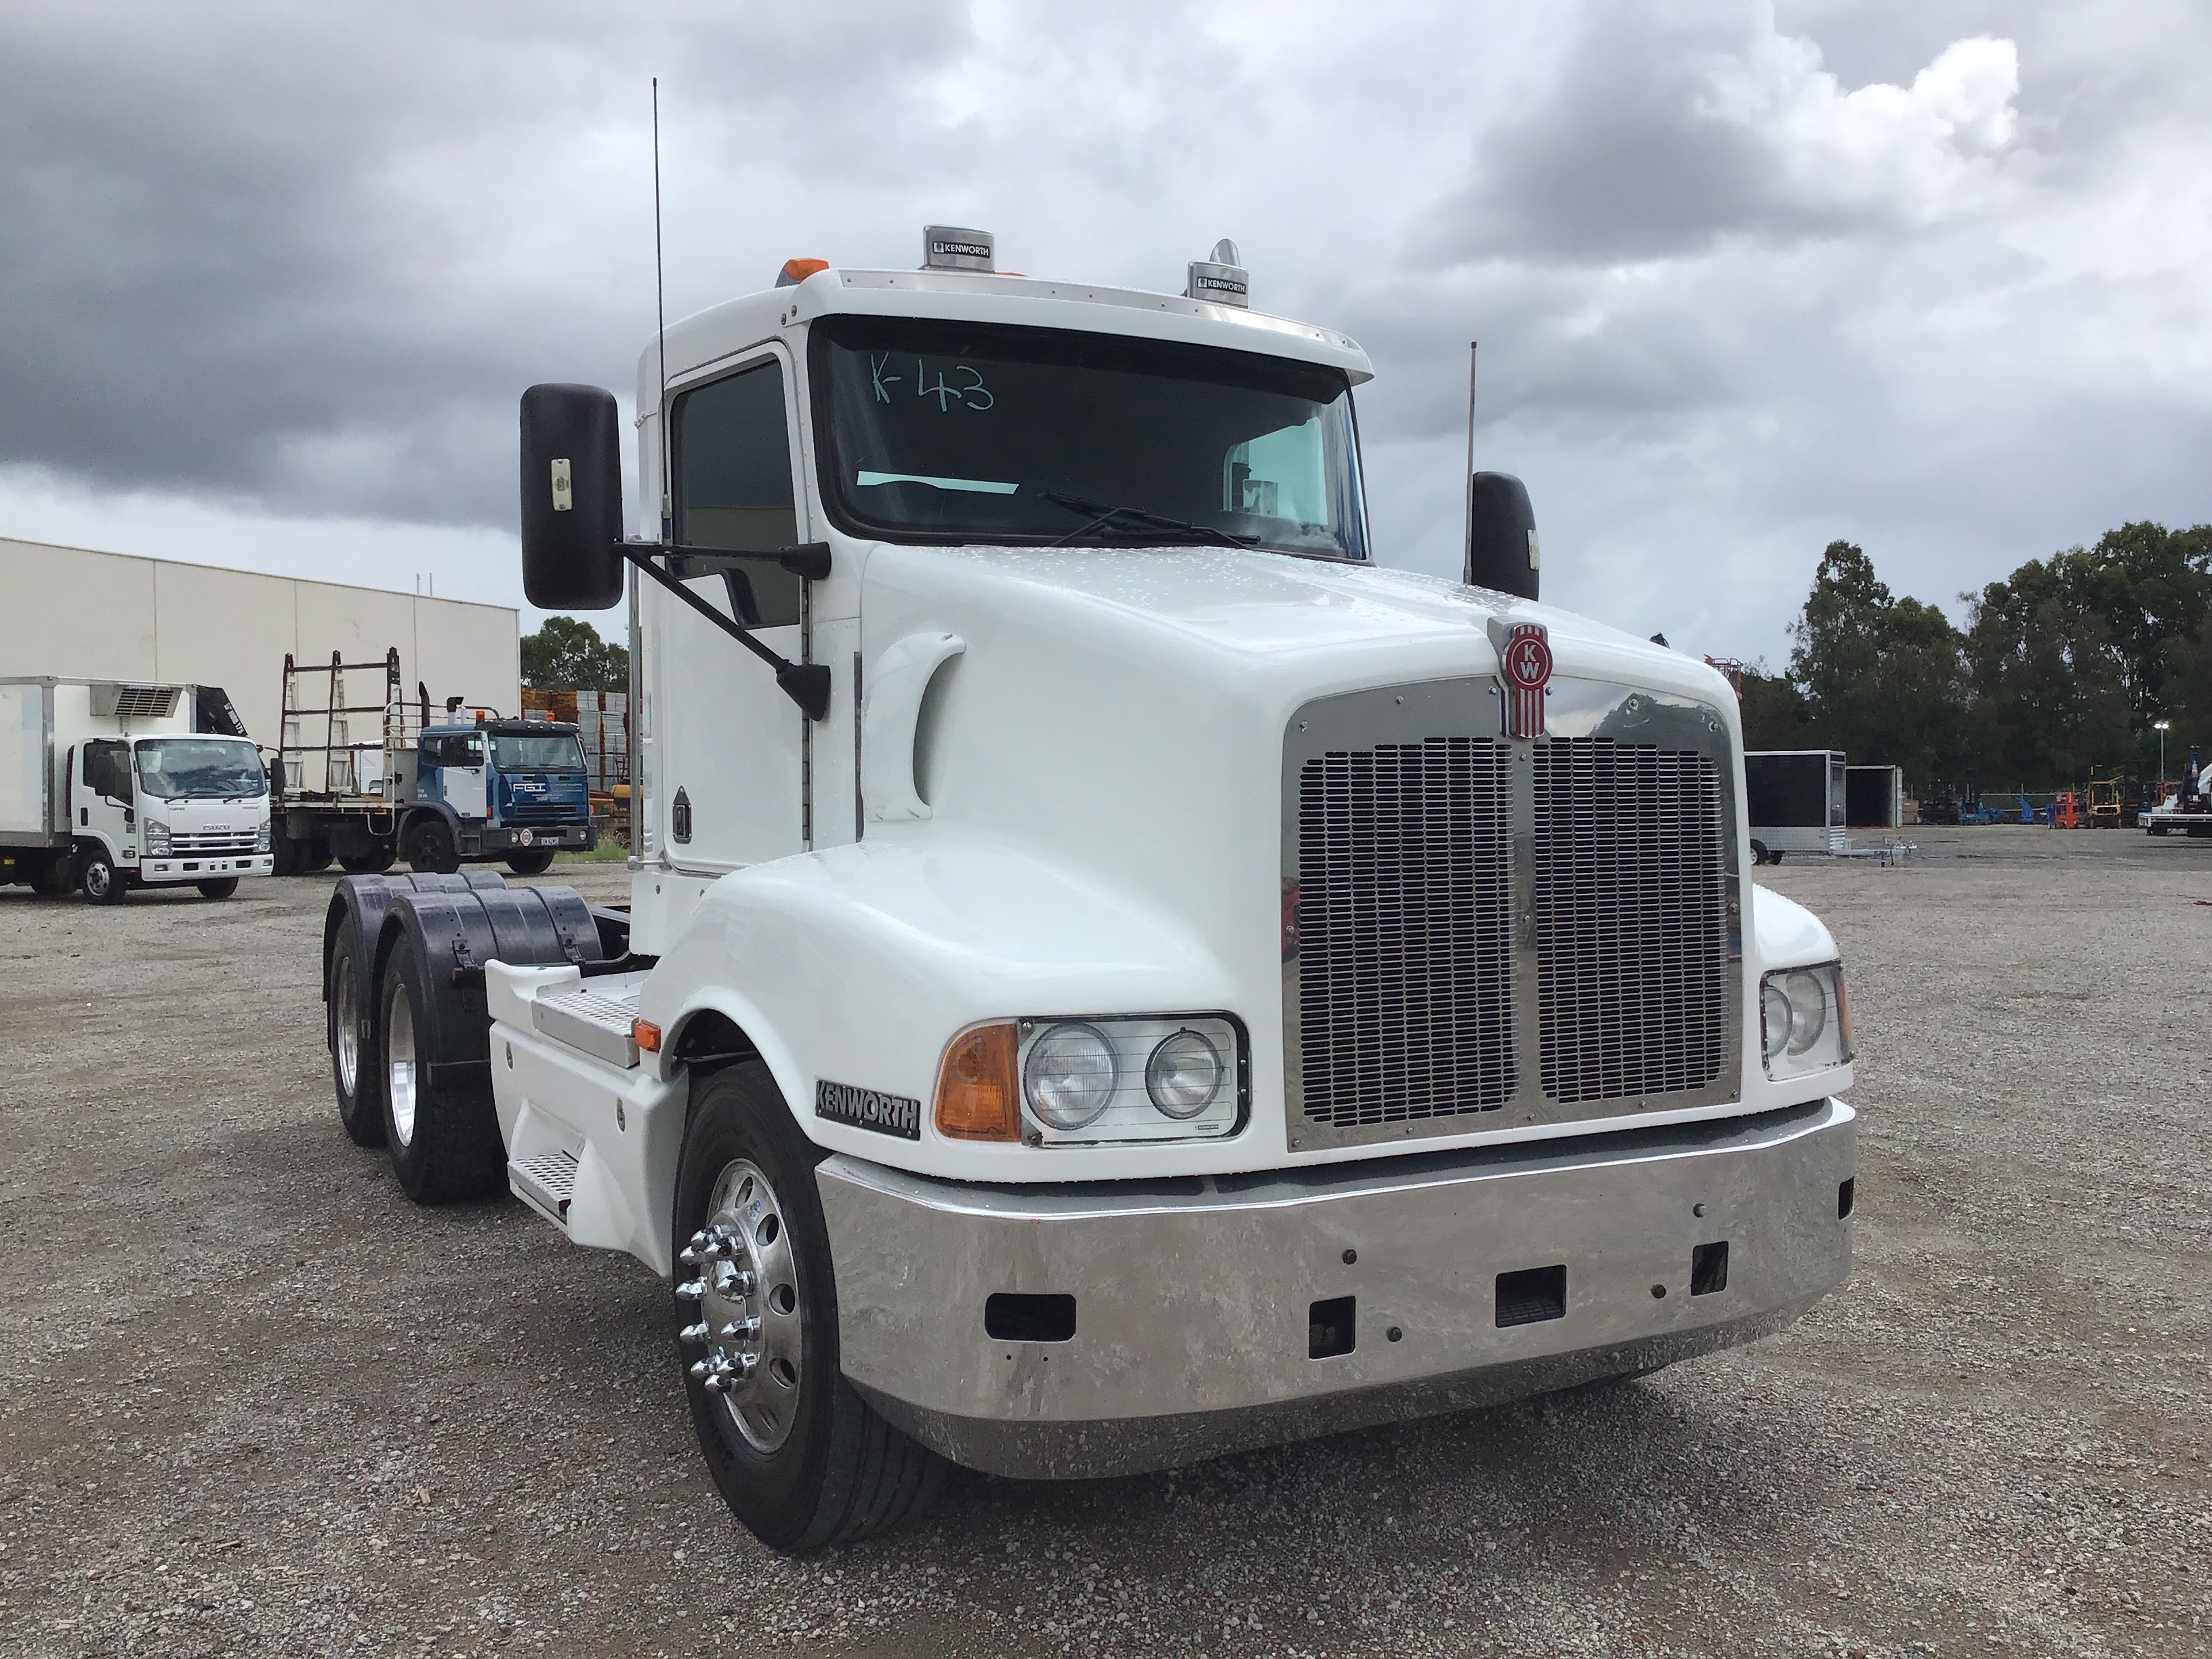 2005 Kenworth T401 6 x 4 Cab Chassis Truck